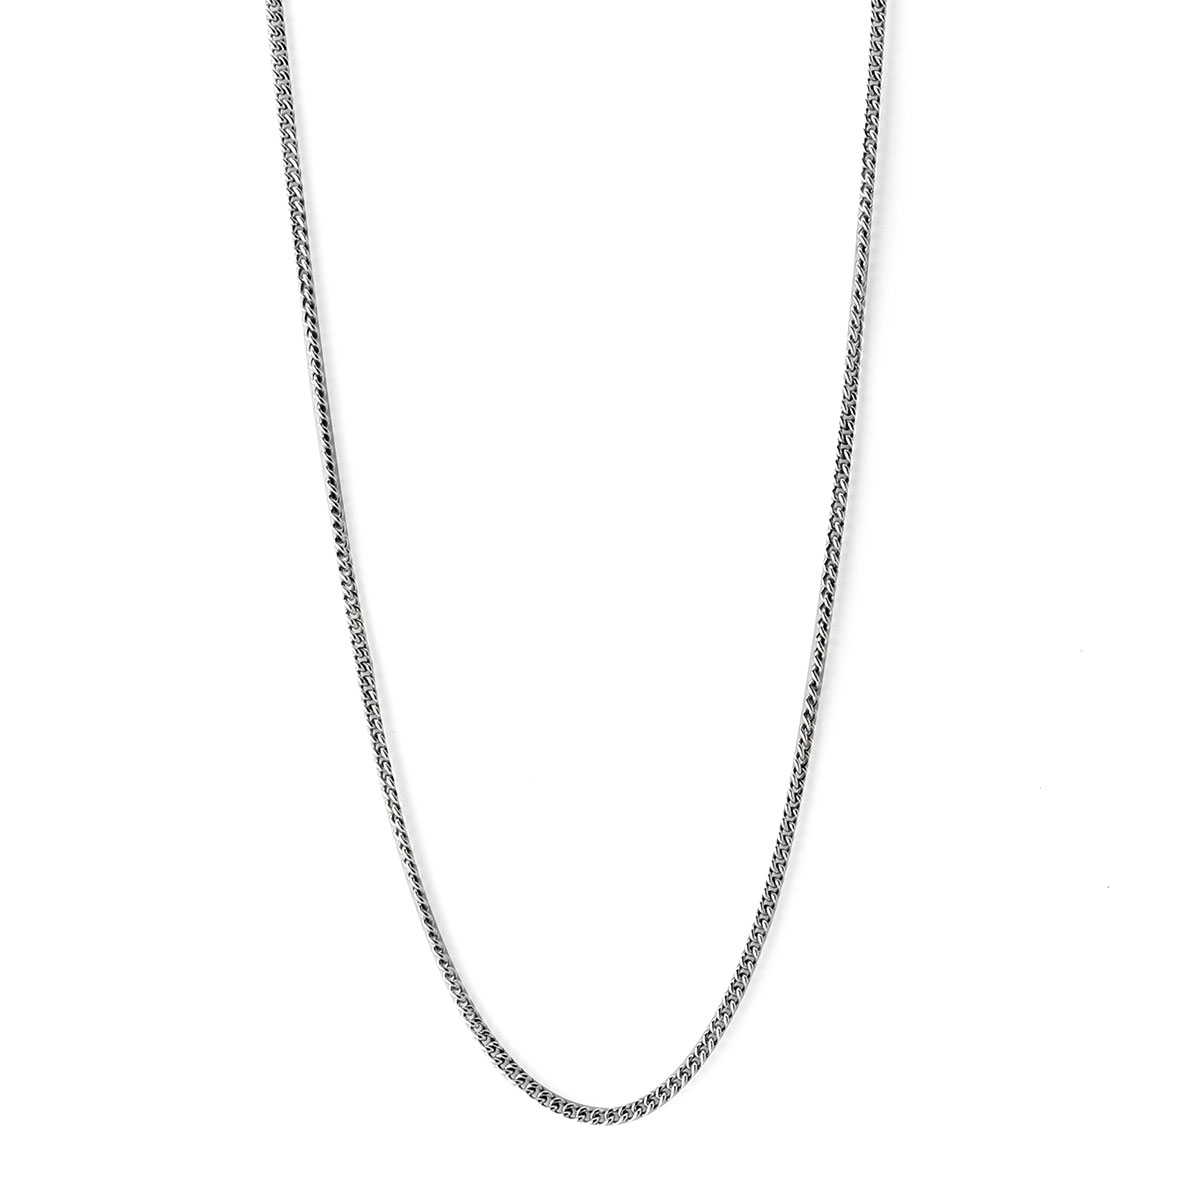 348652-Kir Necklace Curb Chain